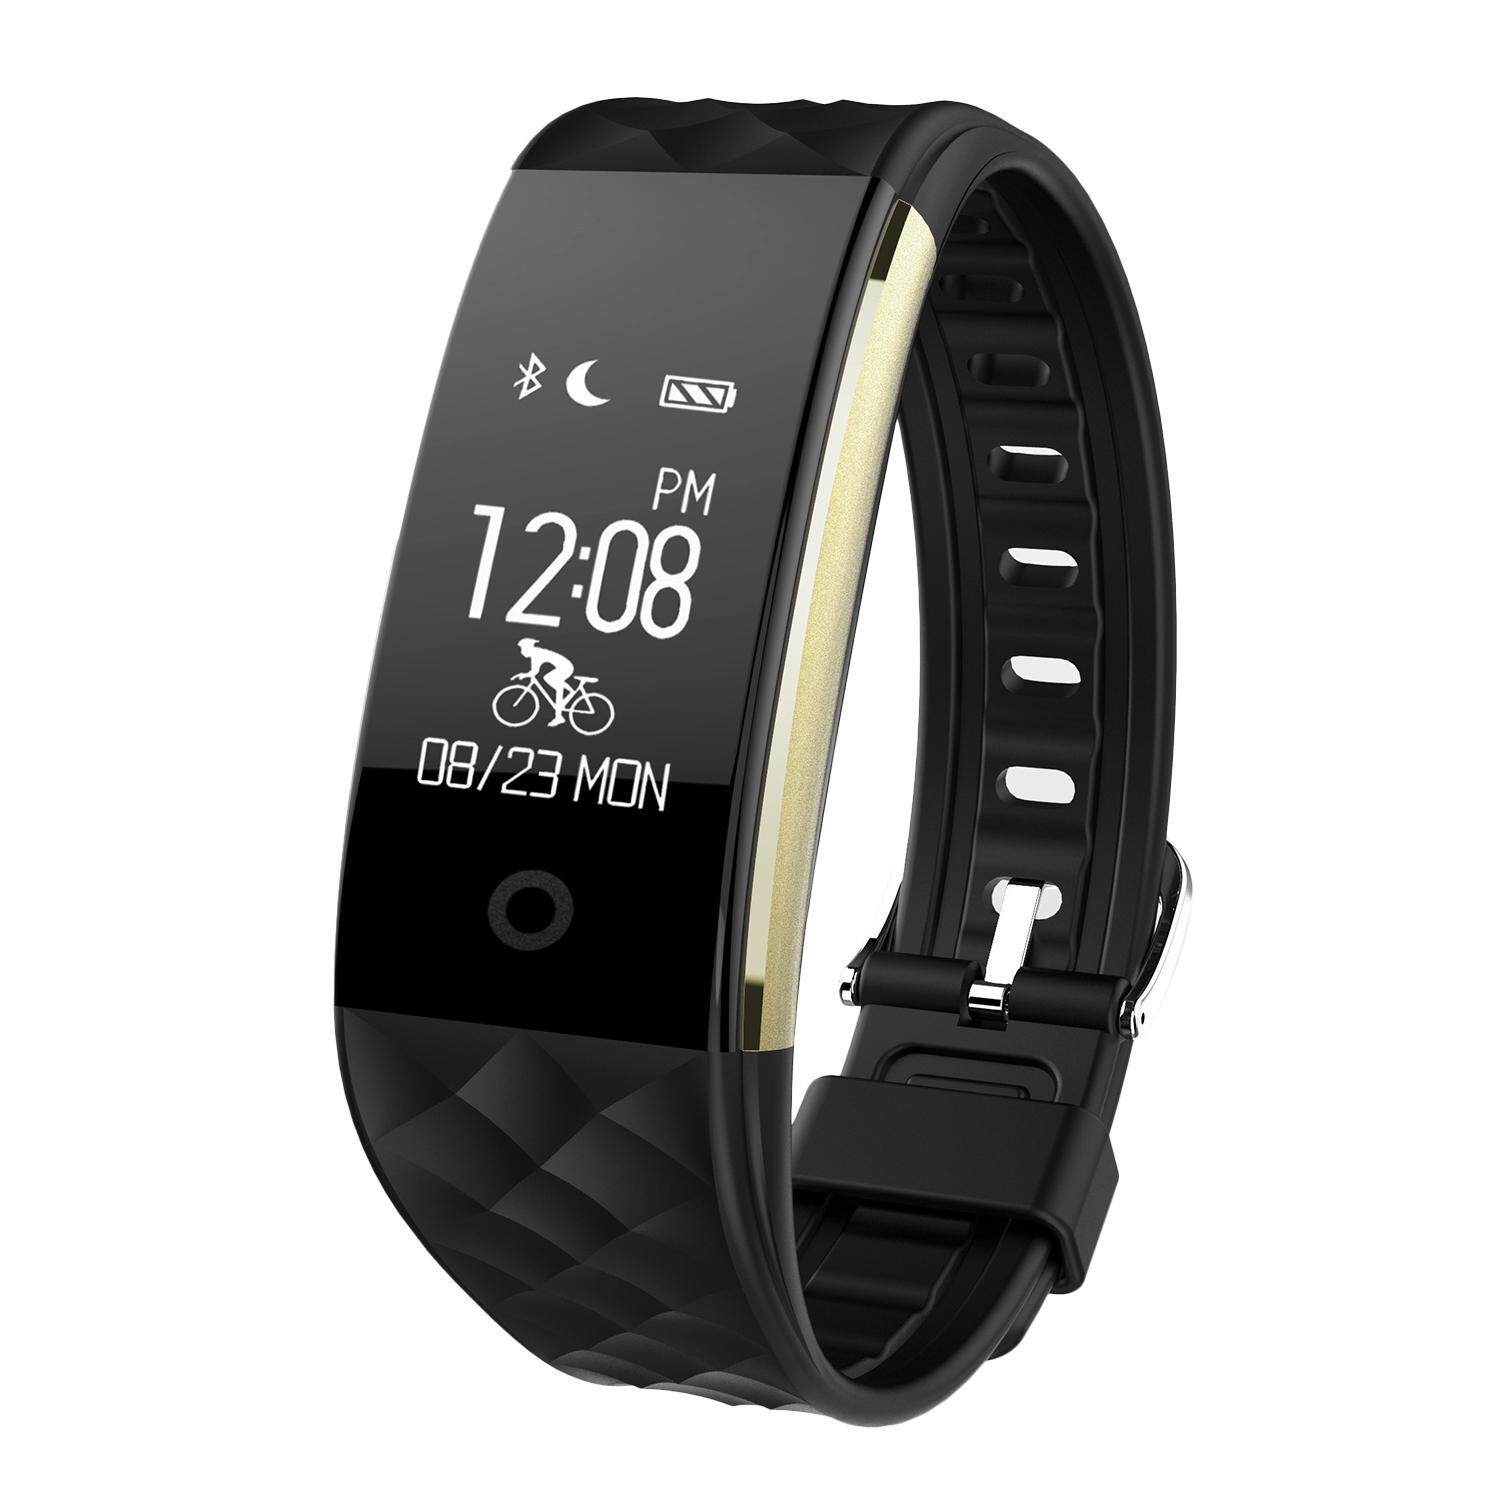 ouhofus Health Pedometer Bluetooth Sync Smart Watch Phone Bracelet For IOS Android Samsung IPhone